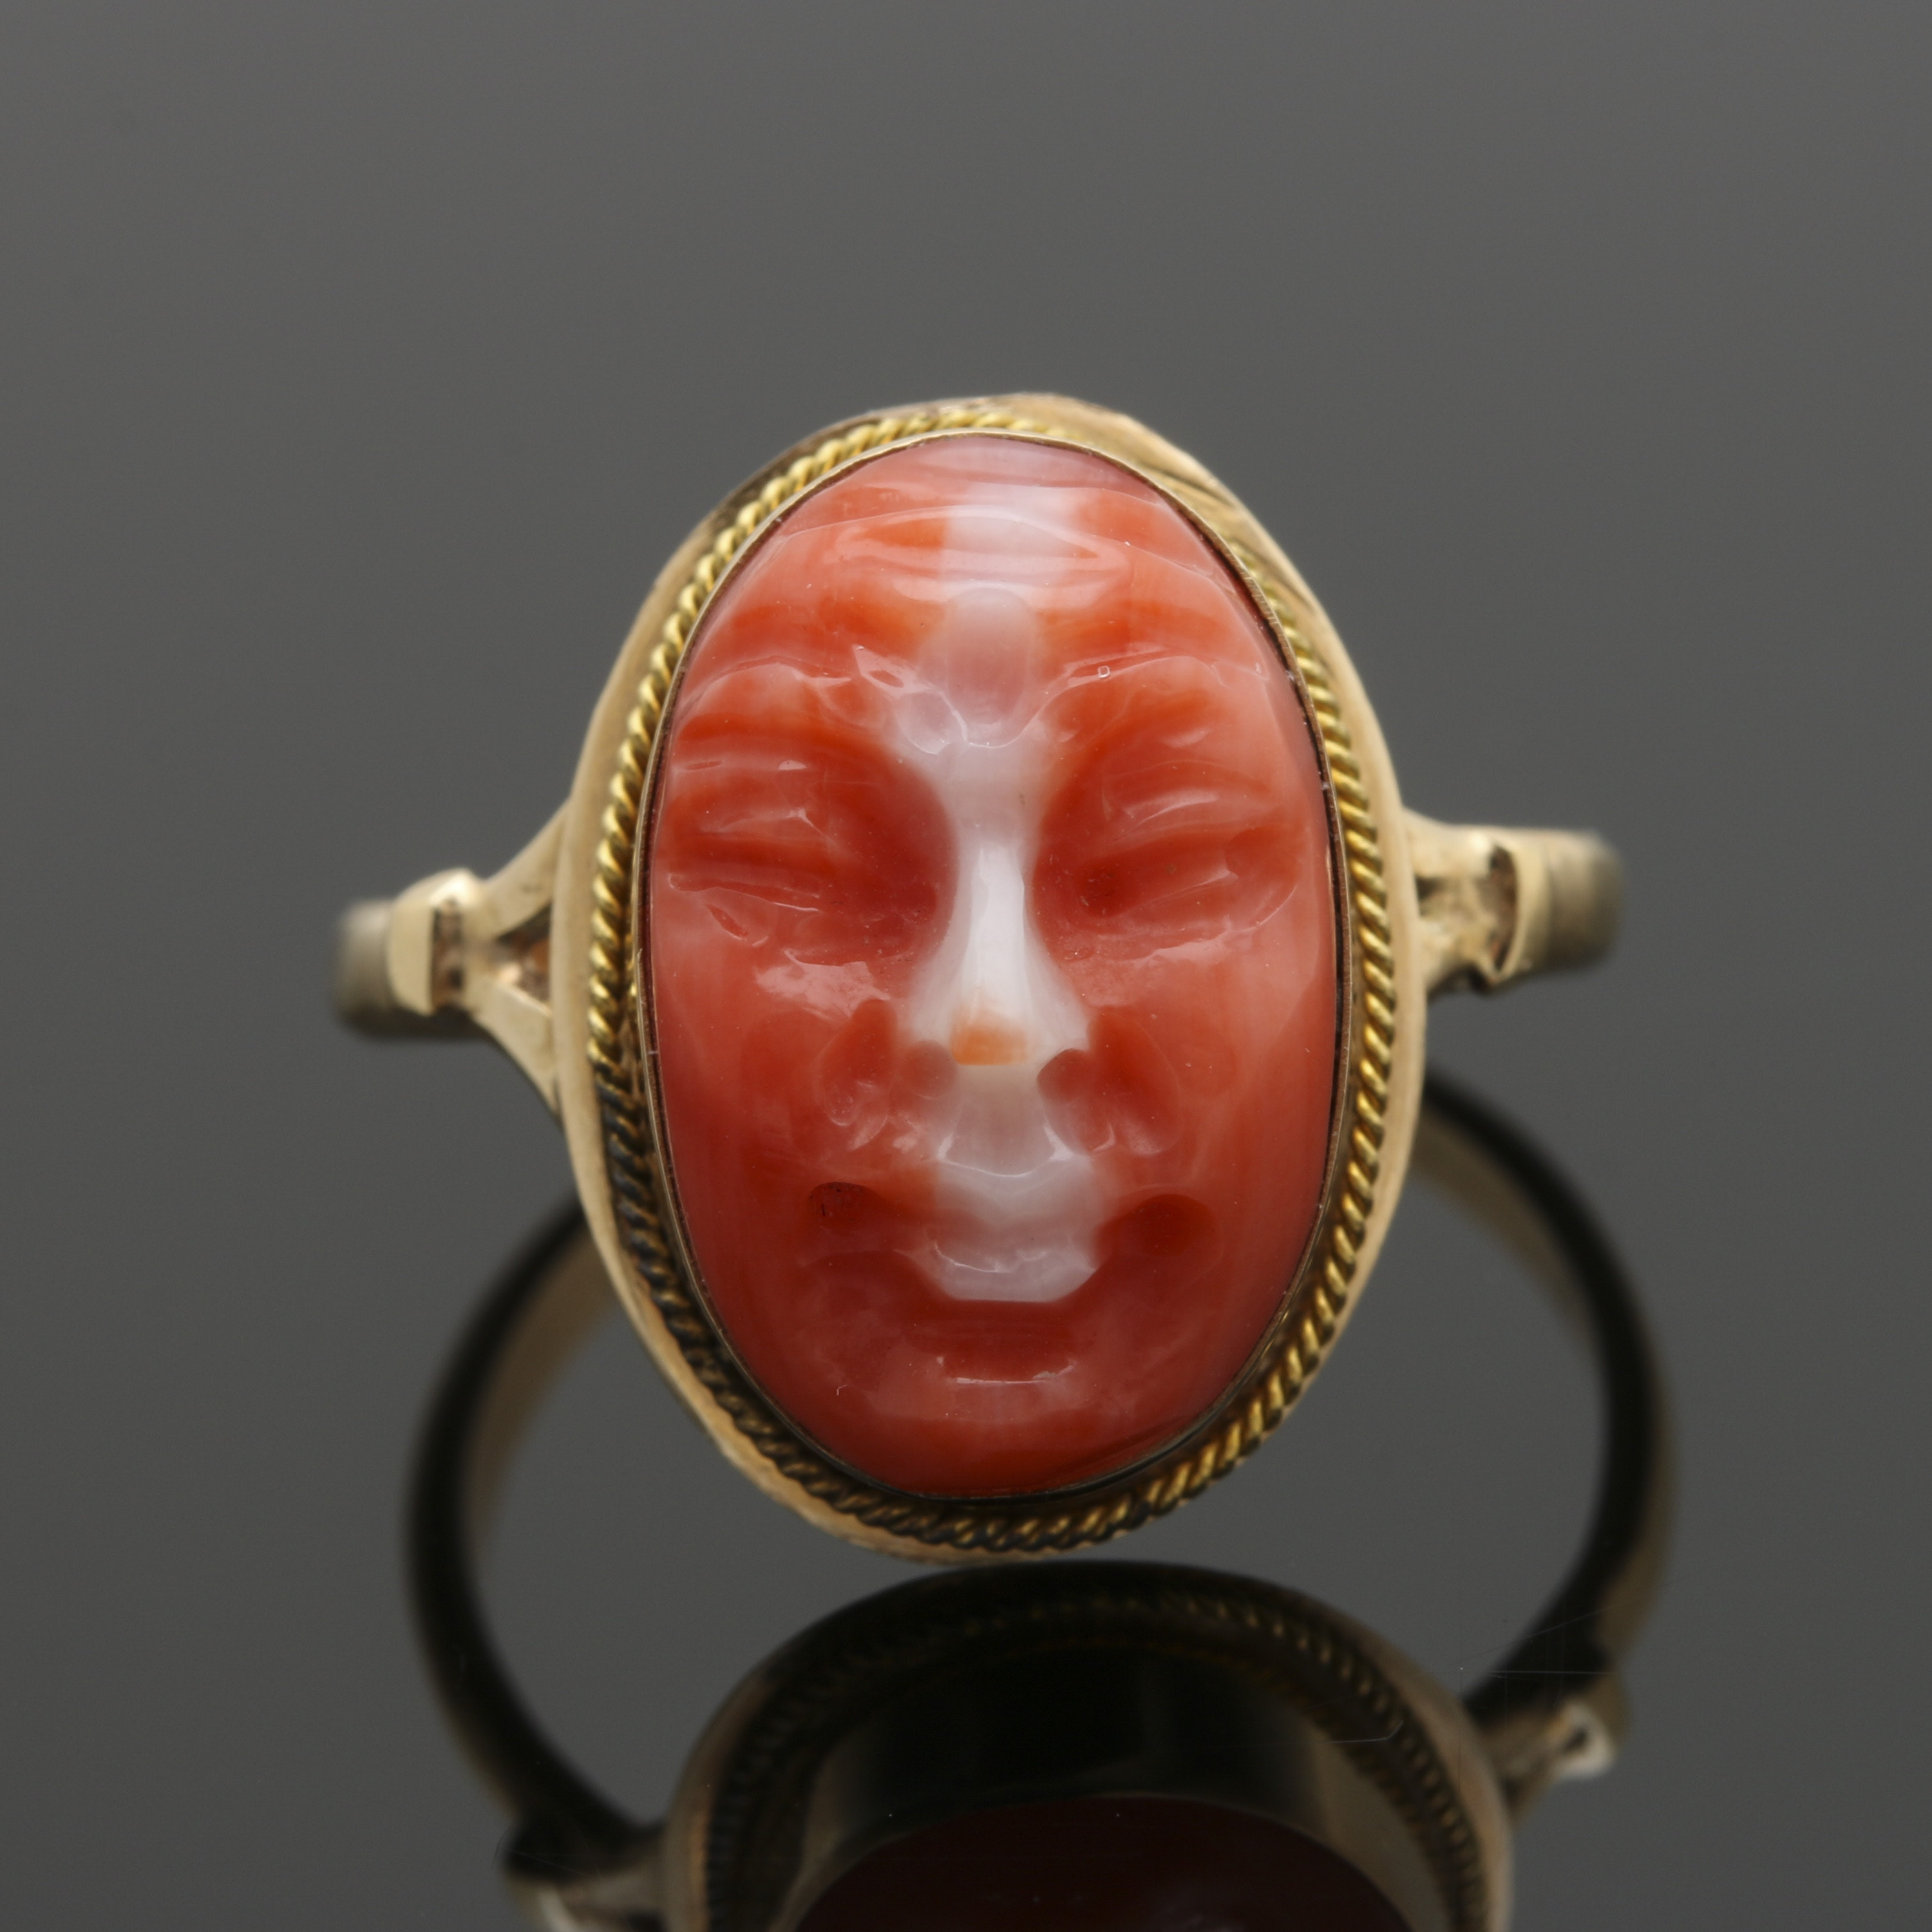 Antique 14K Yellow Gold Carved Coral Face Ring